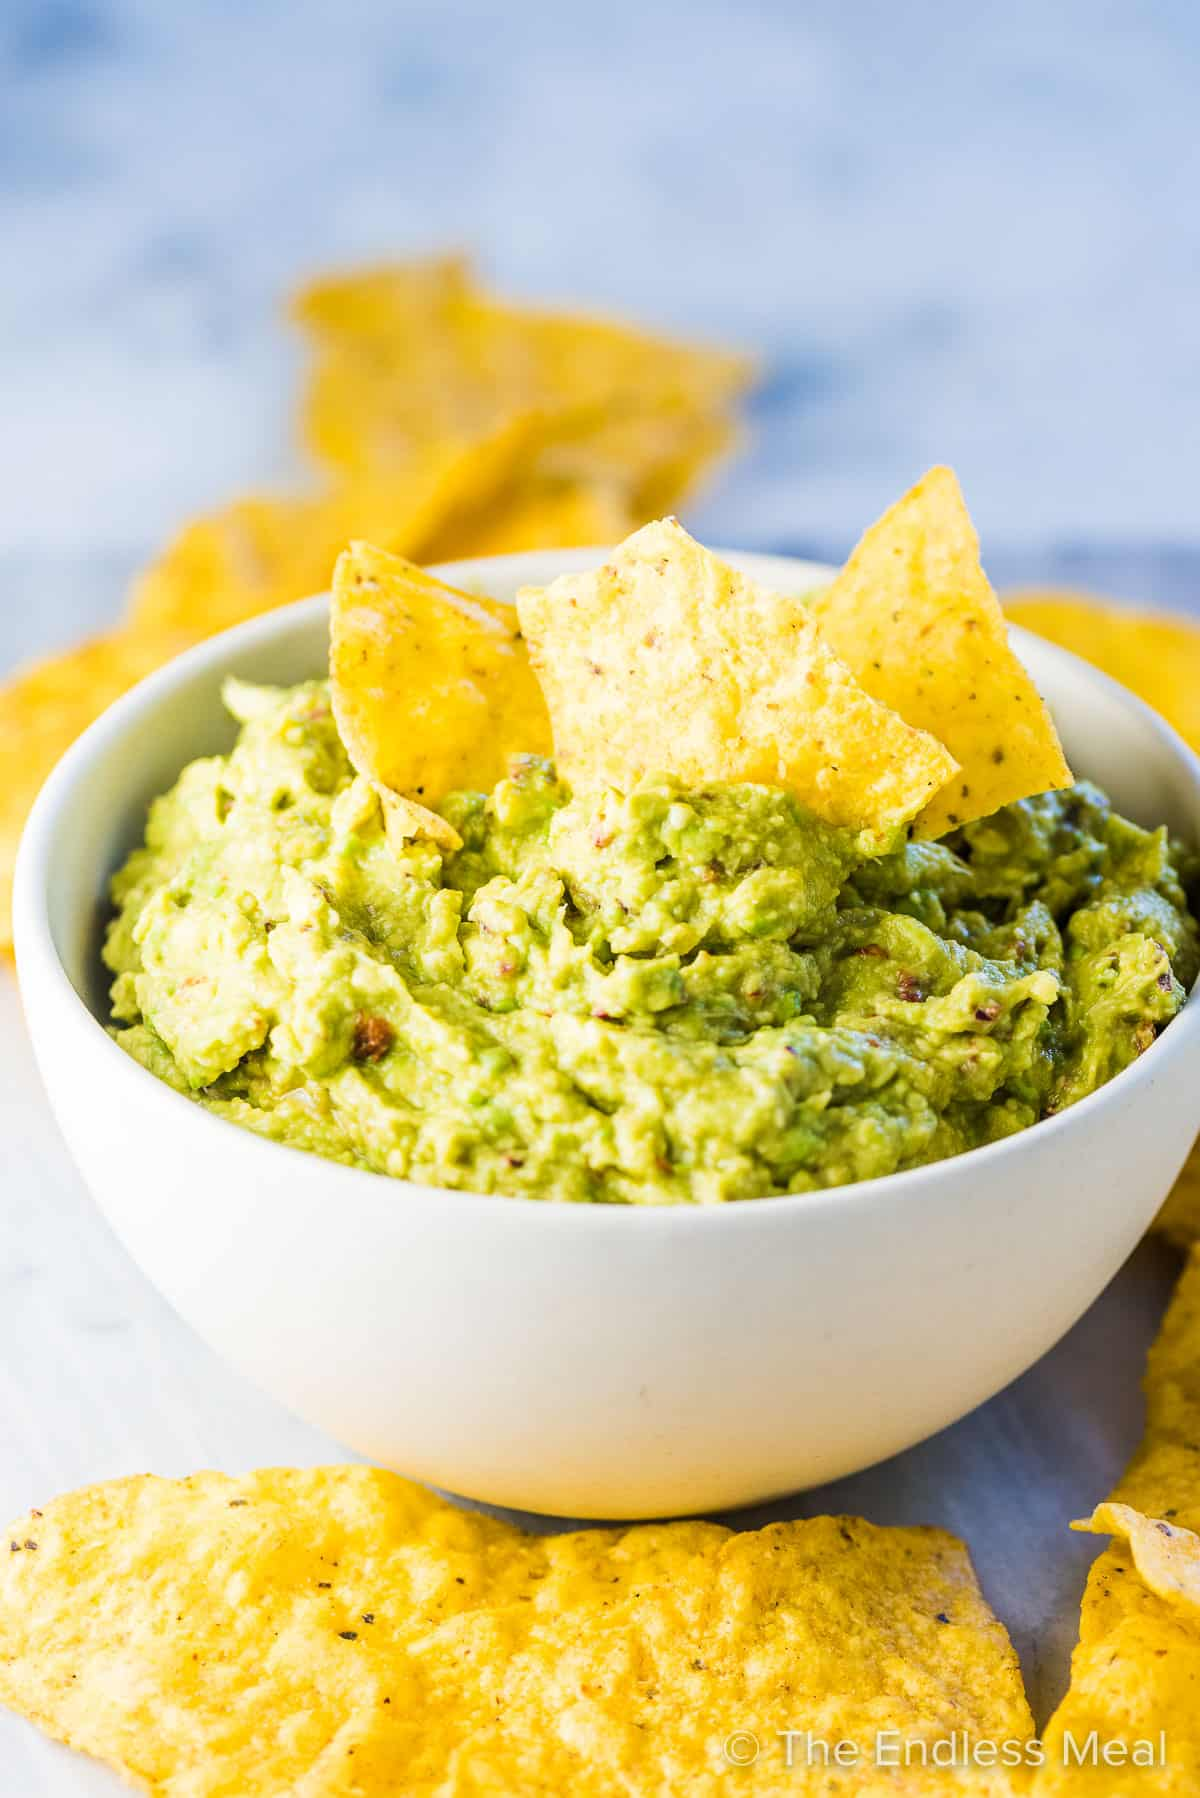 Chipotle guacamole dip in a white bowl with tortilla chips on top.